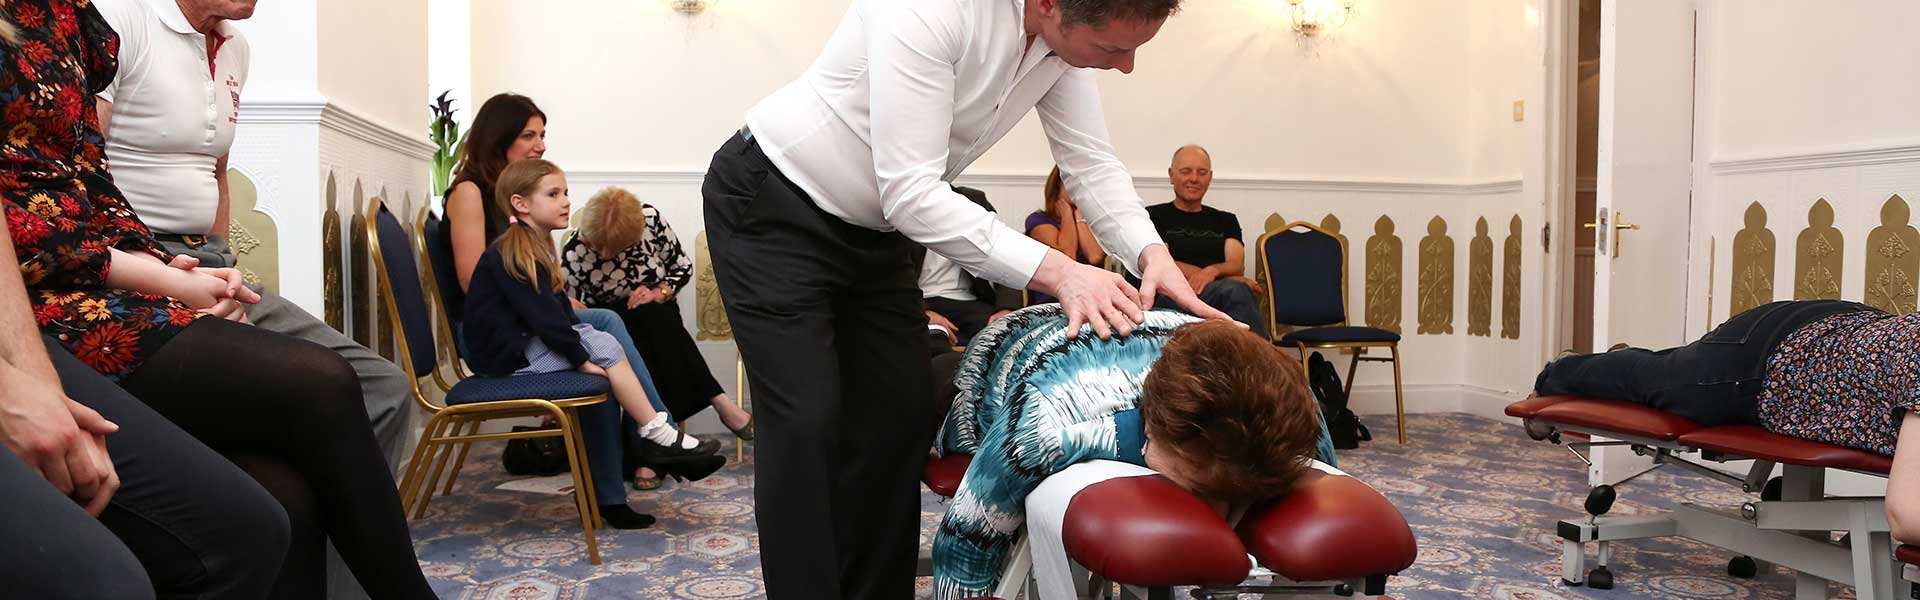 Wigan Family Chiropractic Clinic